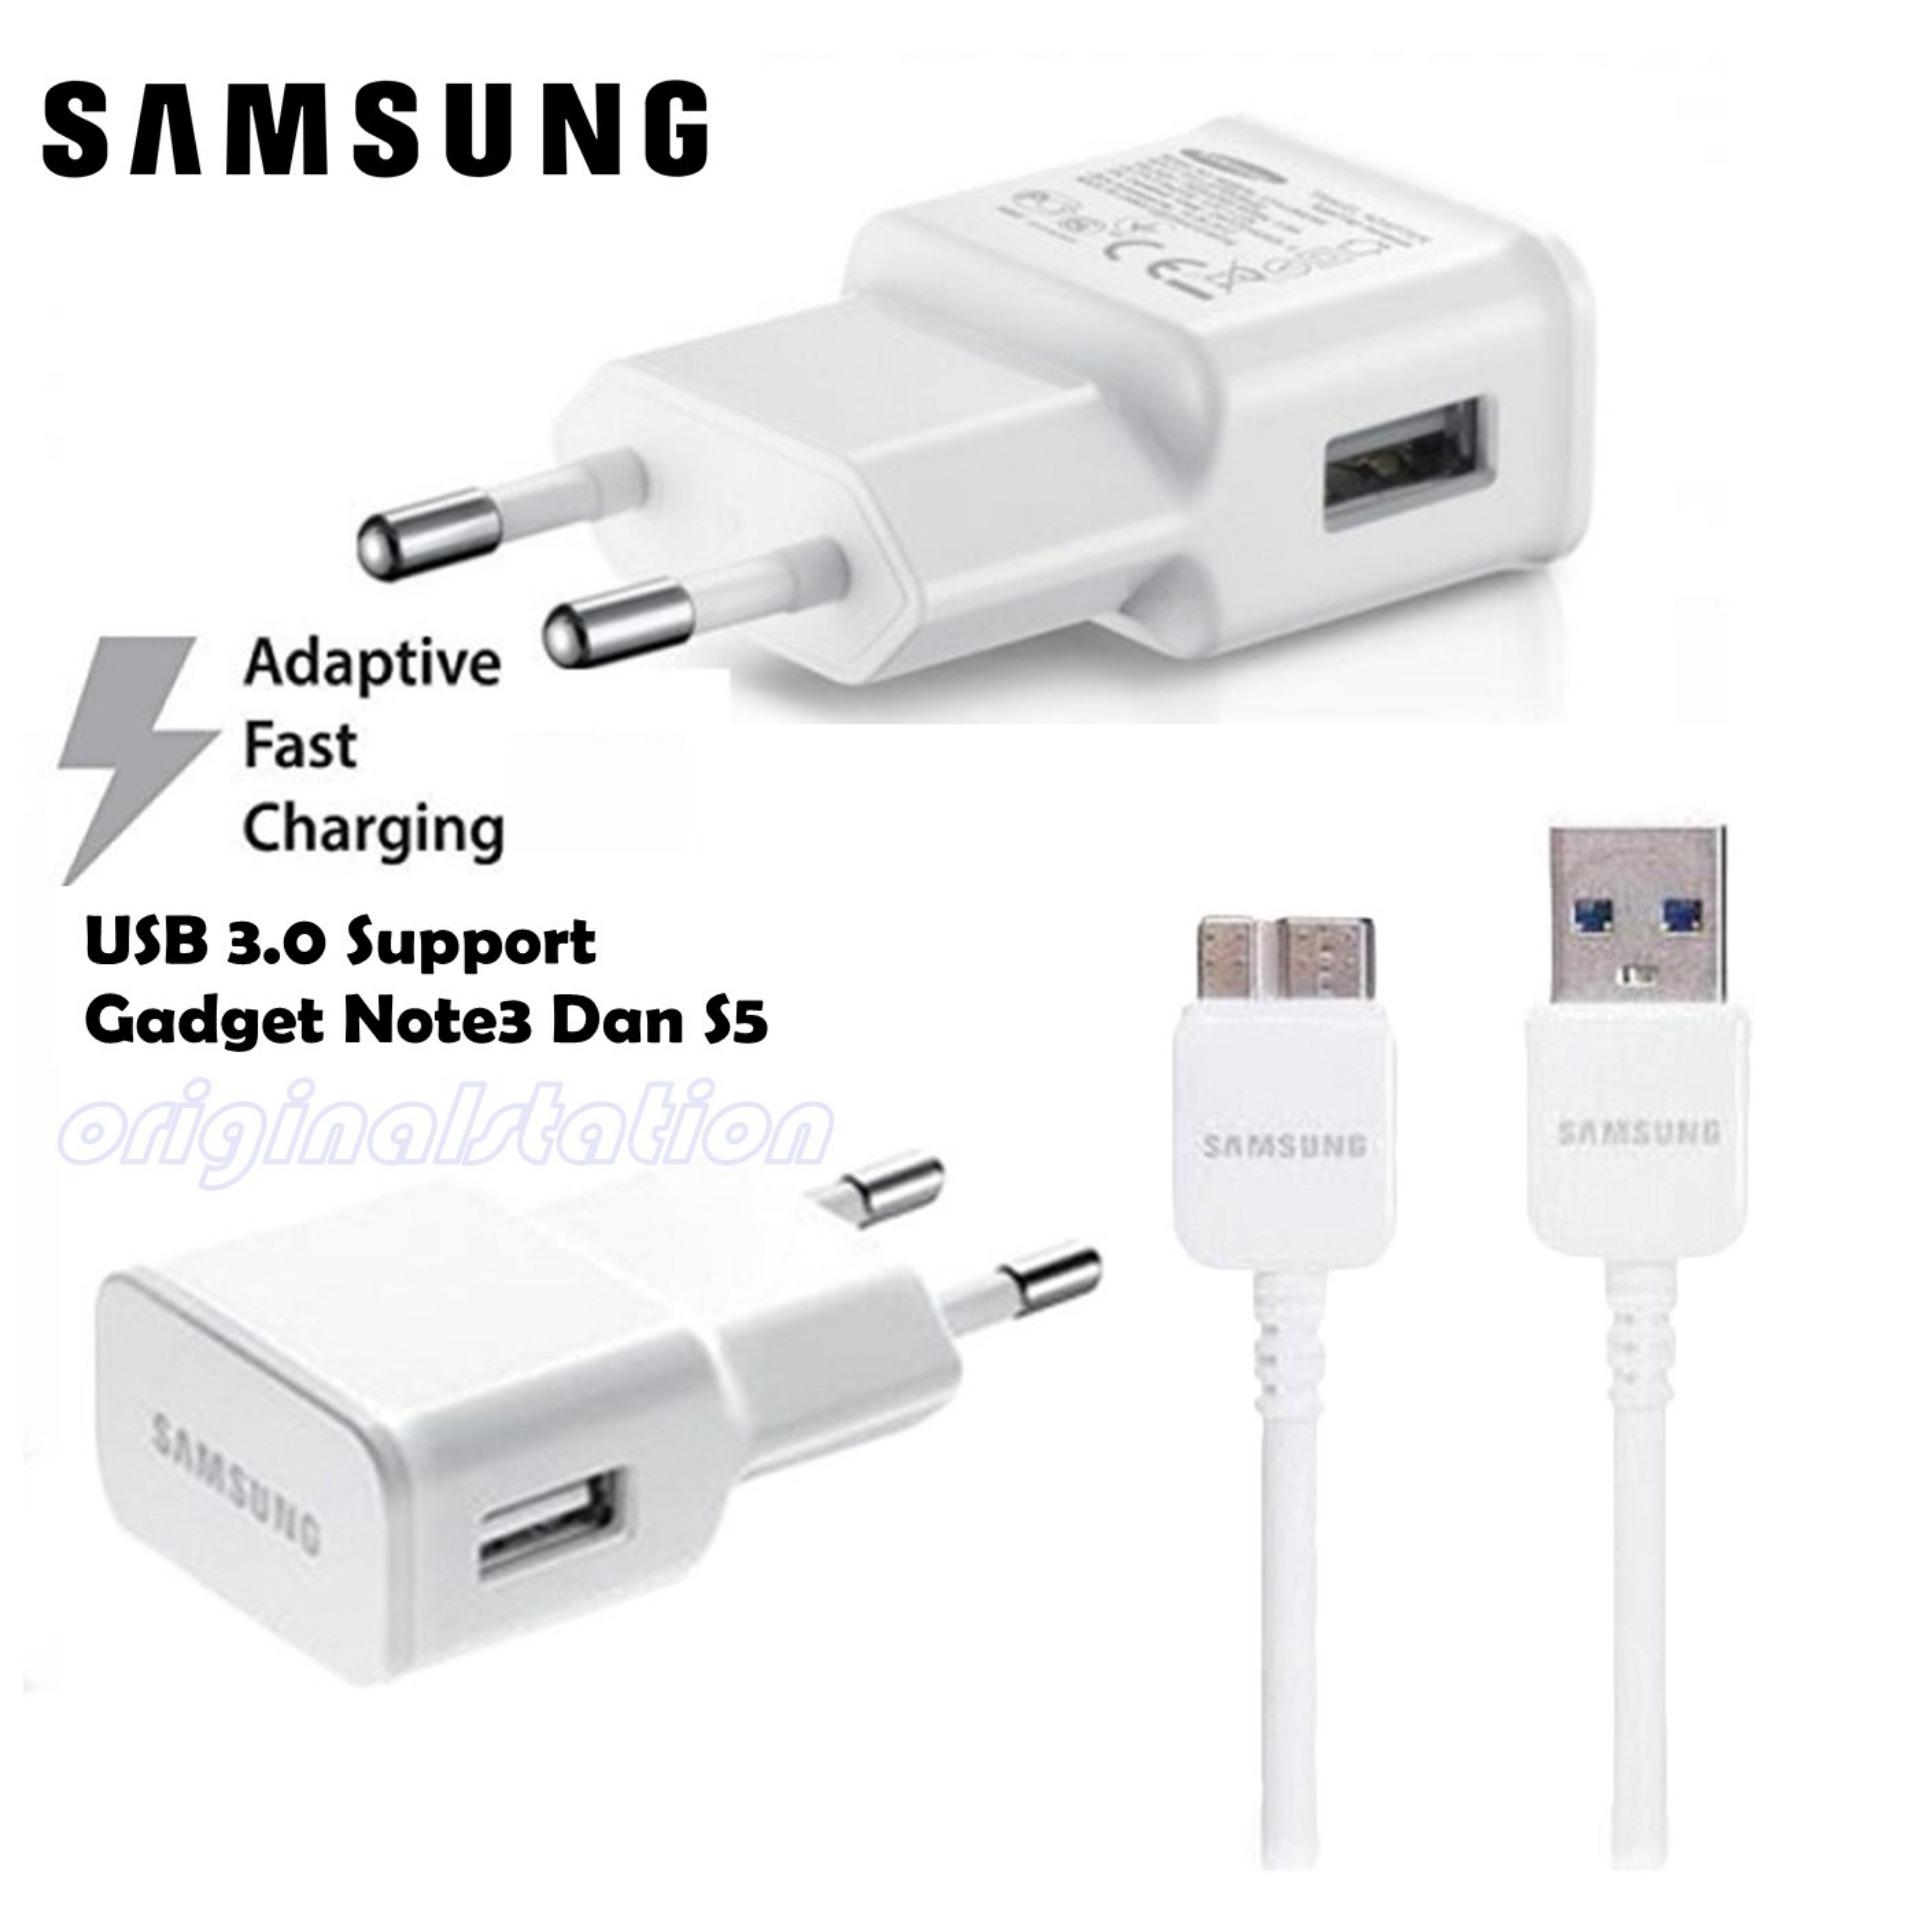 Samsung Galaxy Fast Charger Gadget Note 3 / Galaxy S5 USB 3.0 AFC .